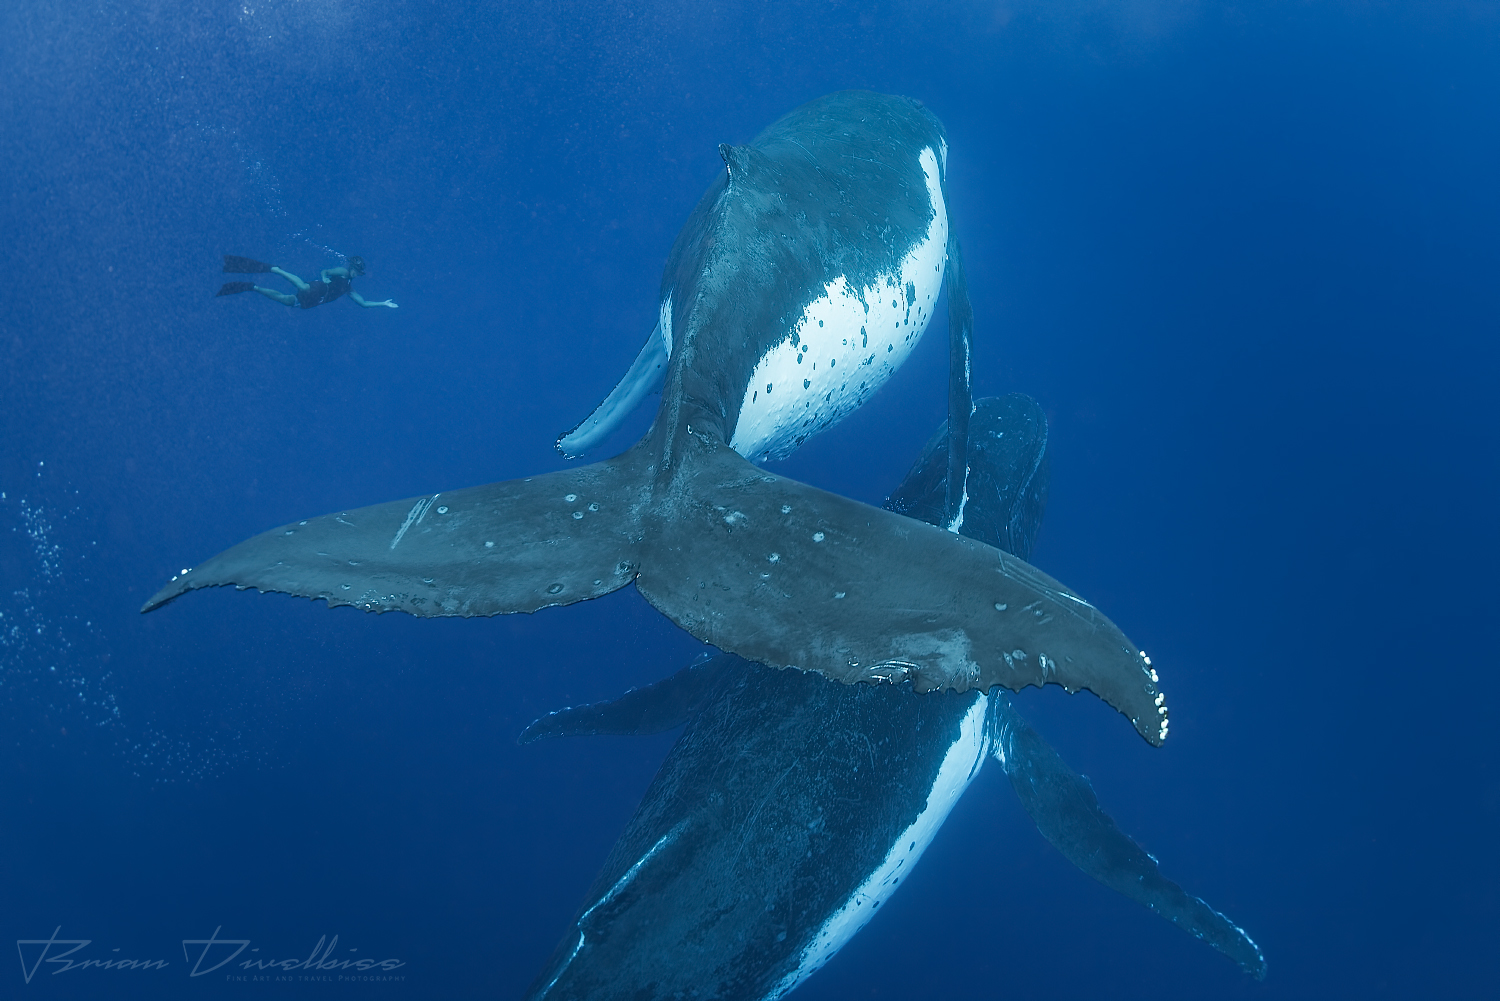 Two humpback whales viewed from behind underwater with a diver in the distance in Vava'u Tonga.